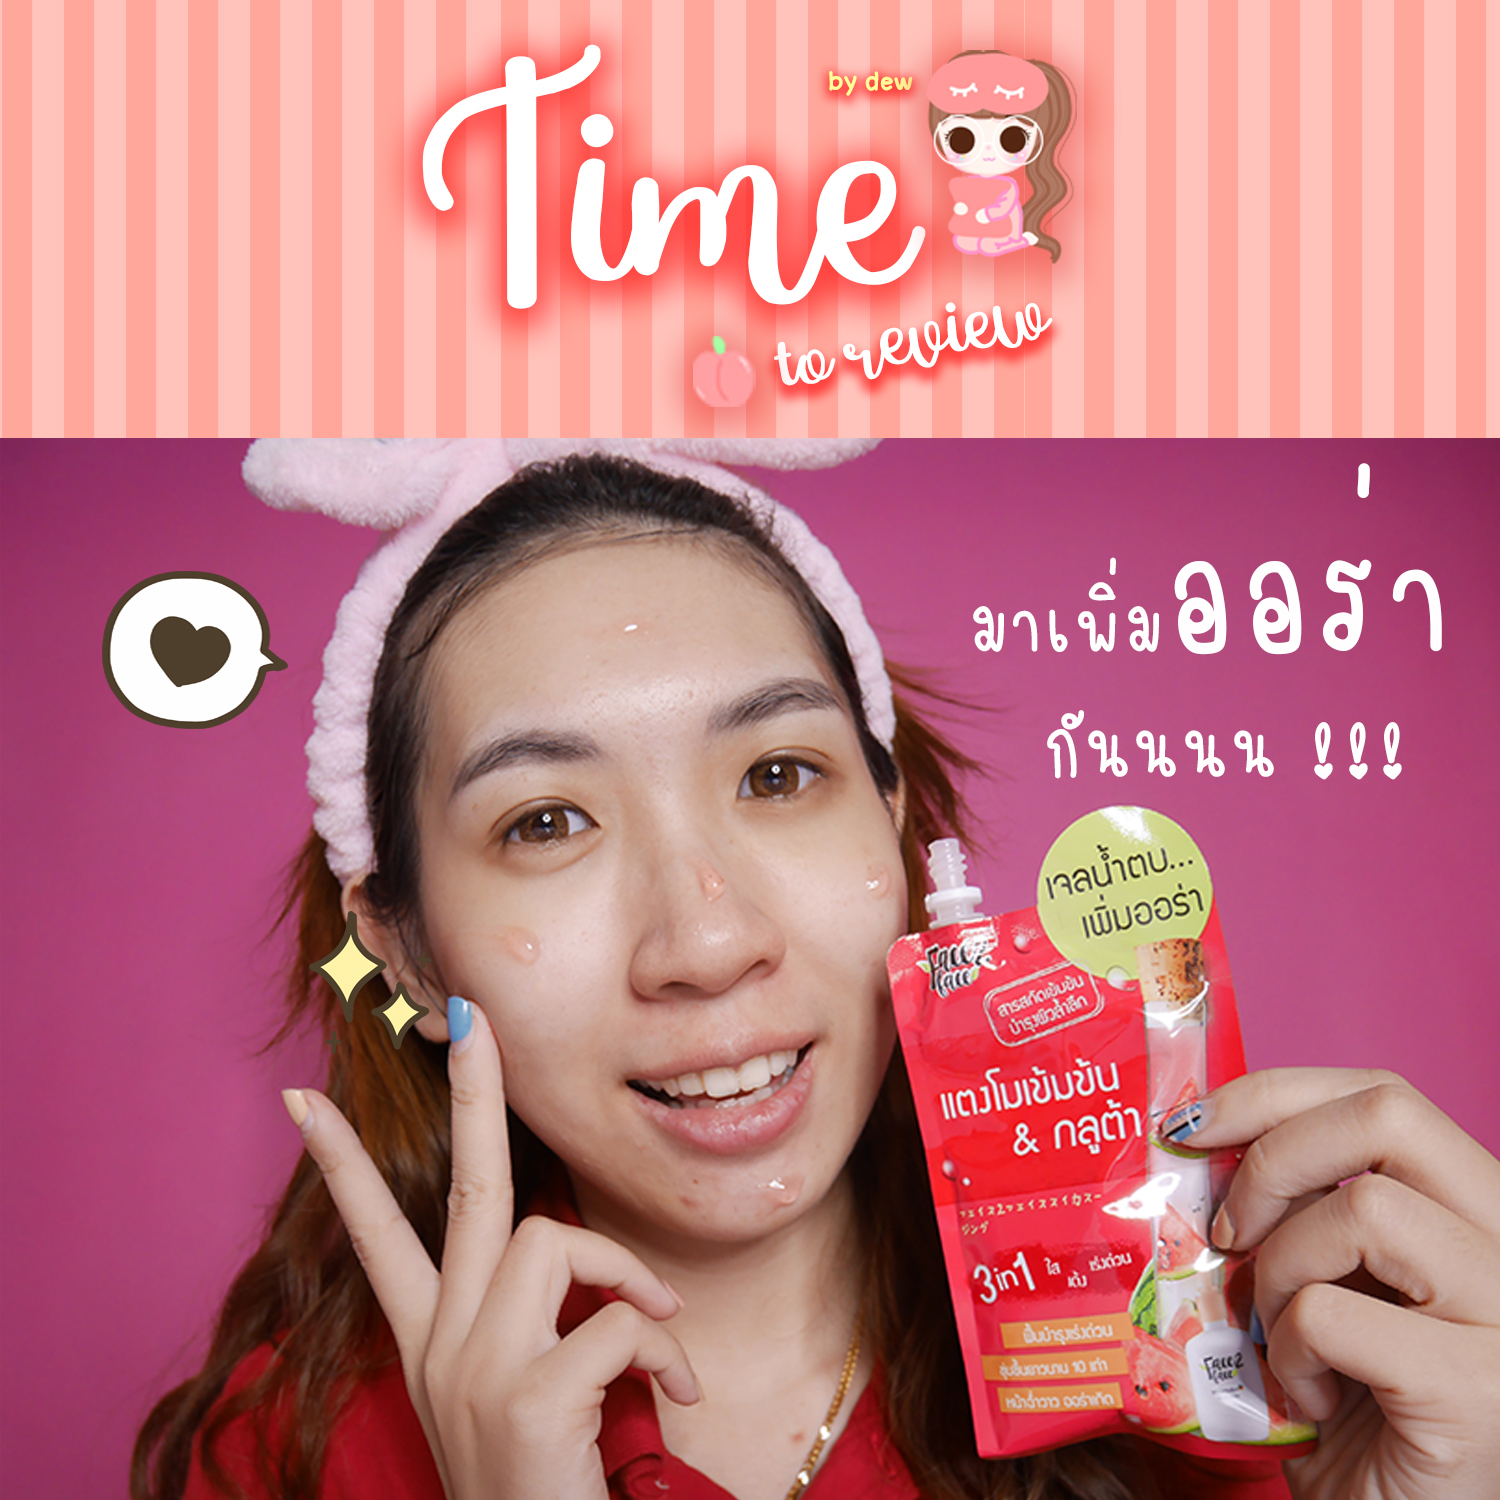 [Review] Face 2 Face Watermelon Soothing Gel น้ำตบเพิ่มออร่า